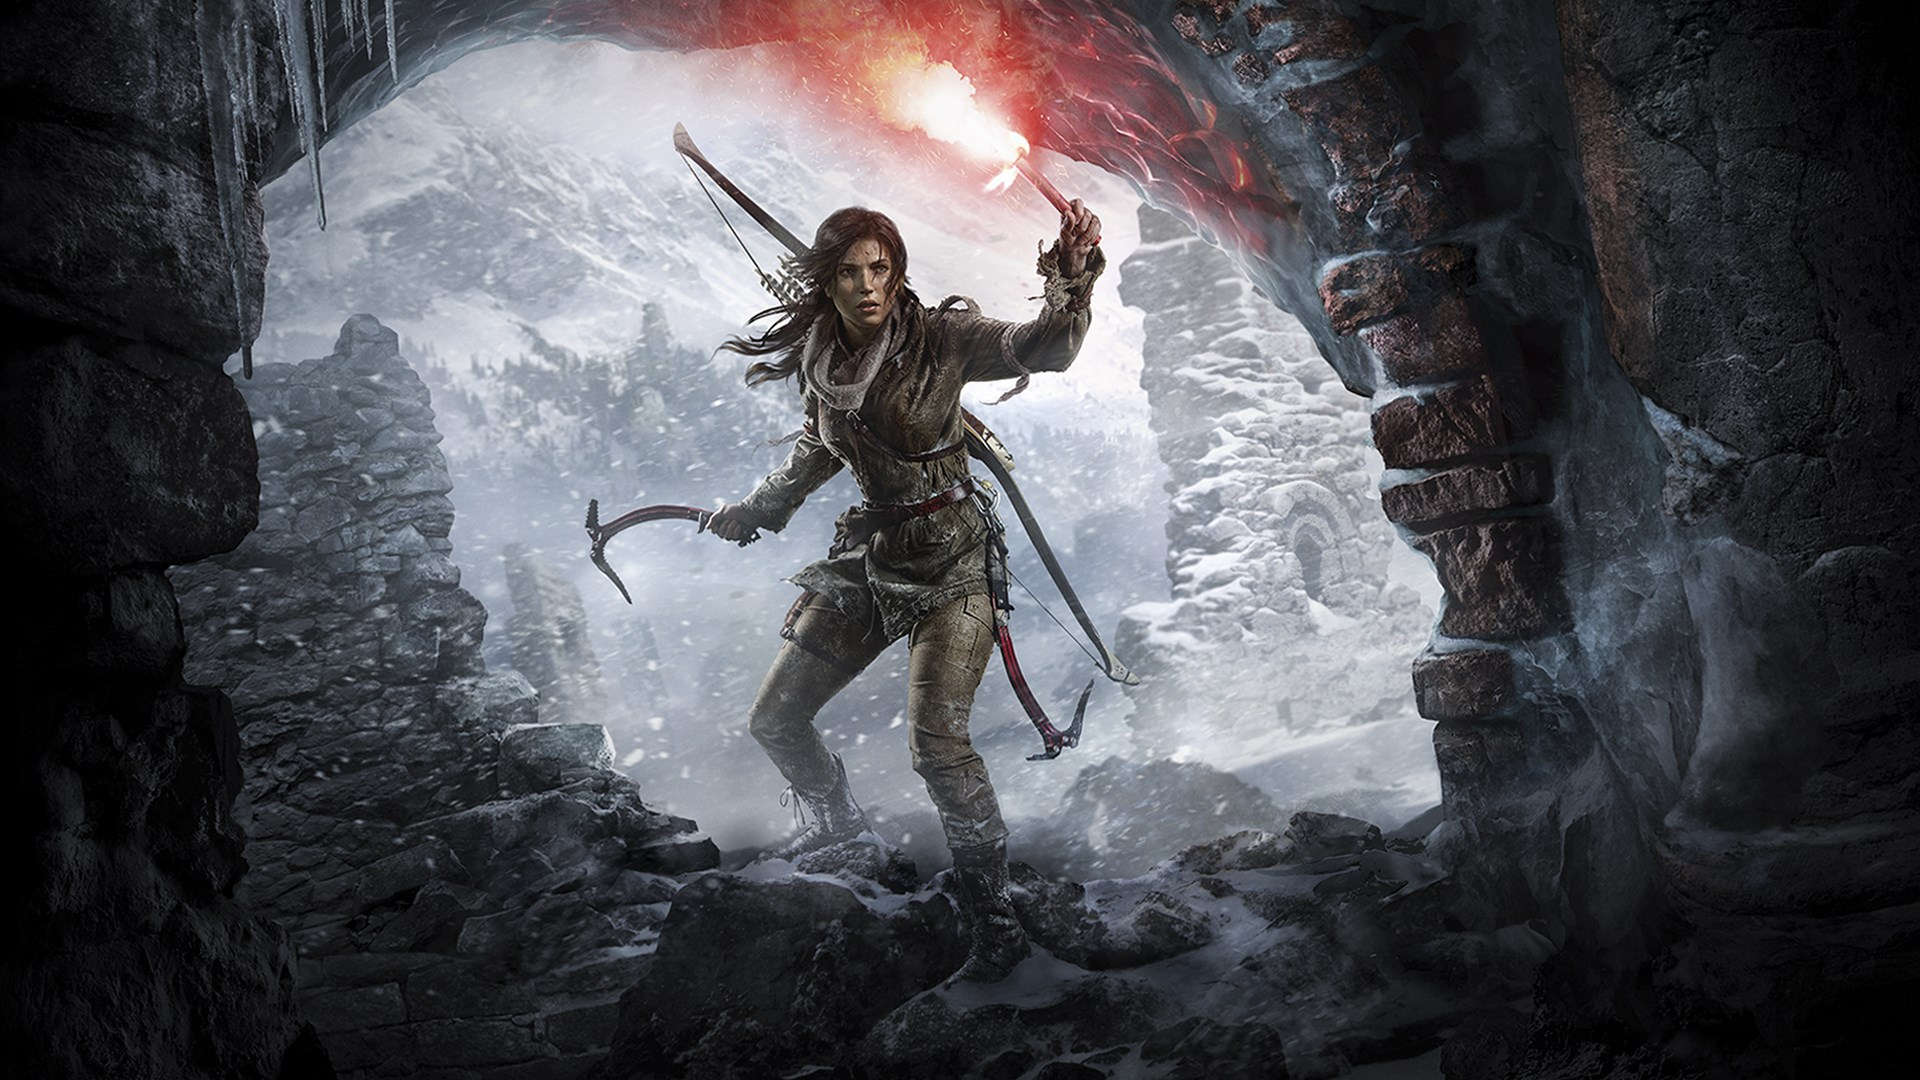 Buy Rise of the Tomb Raider - Microsoft Store